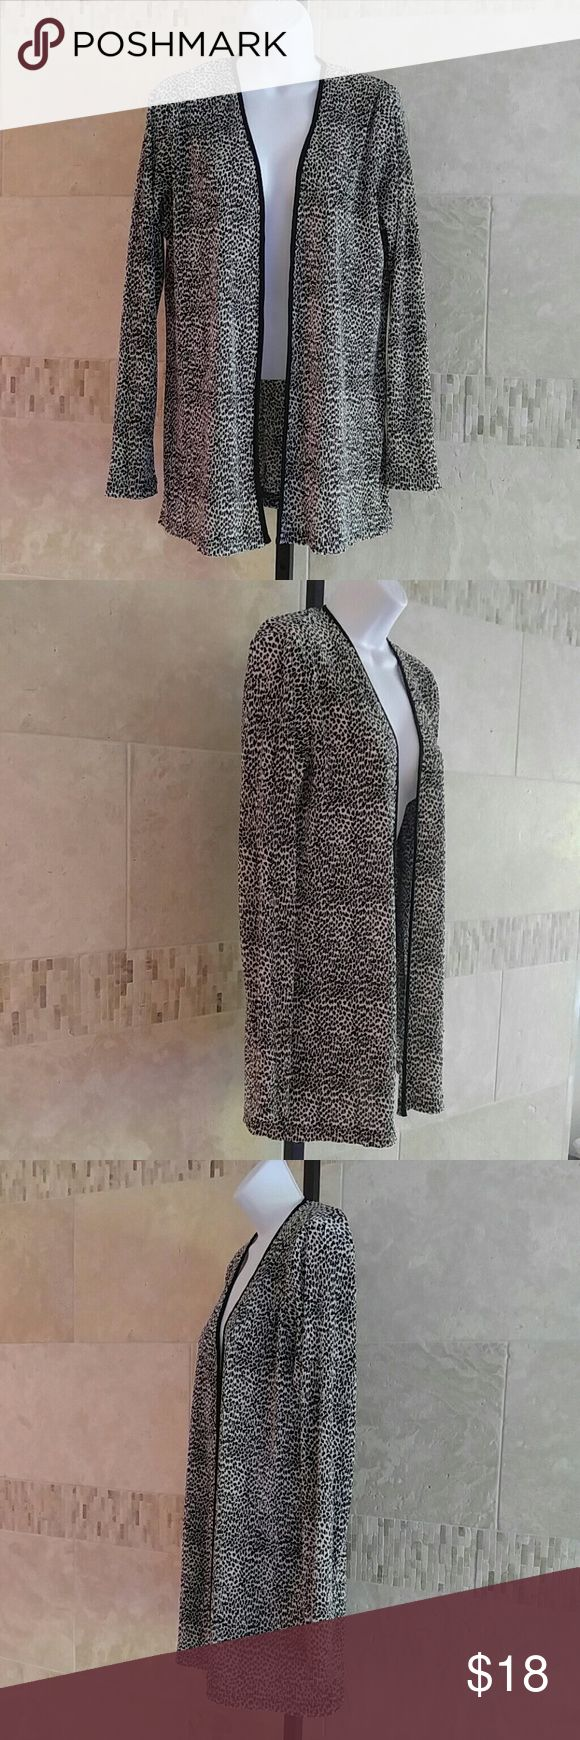 Gorgeous Virgo Animal Print Jacket! This classy black and white animal print jacket has tiny pleats and black trim.  Long sleeves.  The size tag is missing, but measures to be Medium.  Made of polyester and rayon.  Feels soft and silky.  A great addition to your closet! Virgo Tops